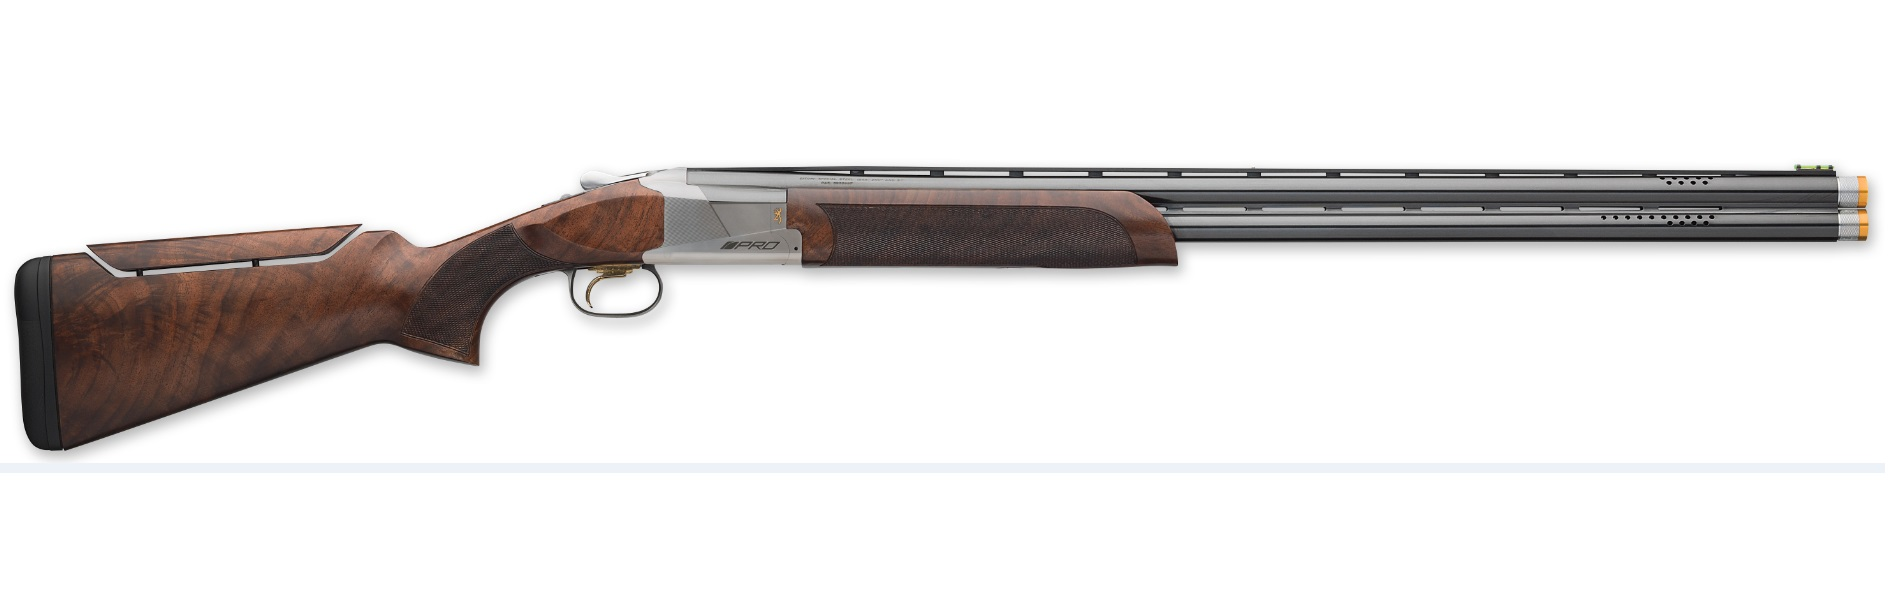 Browning Citori 725 Sporting Adjustable 12 Gauge